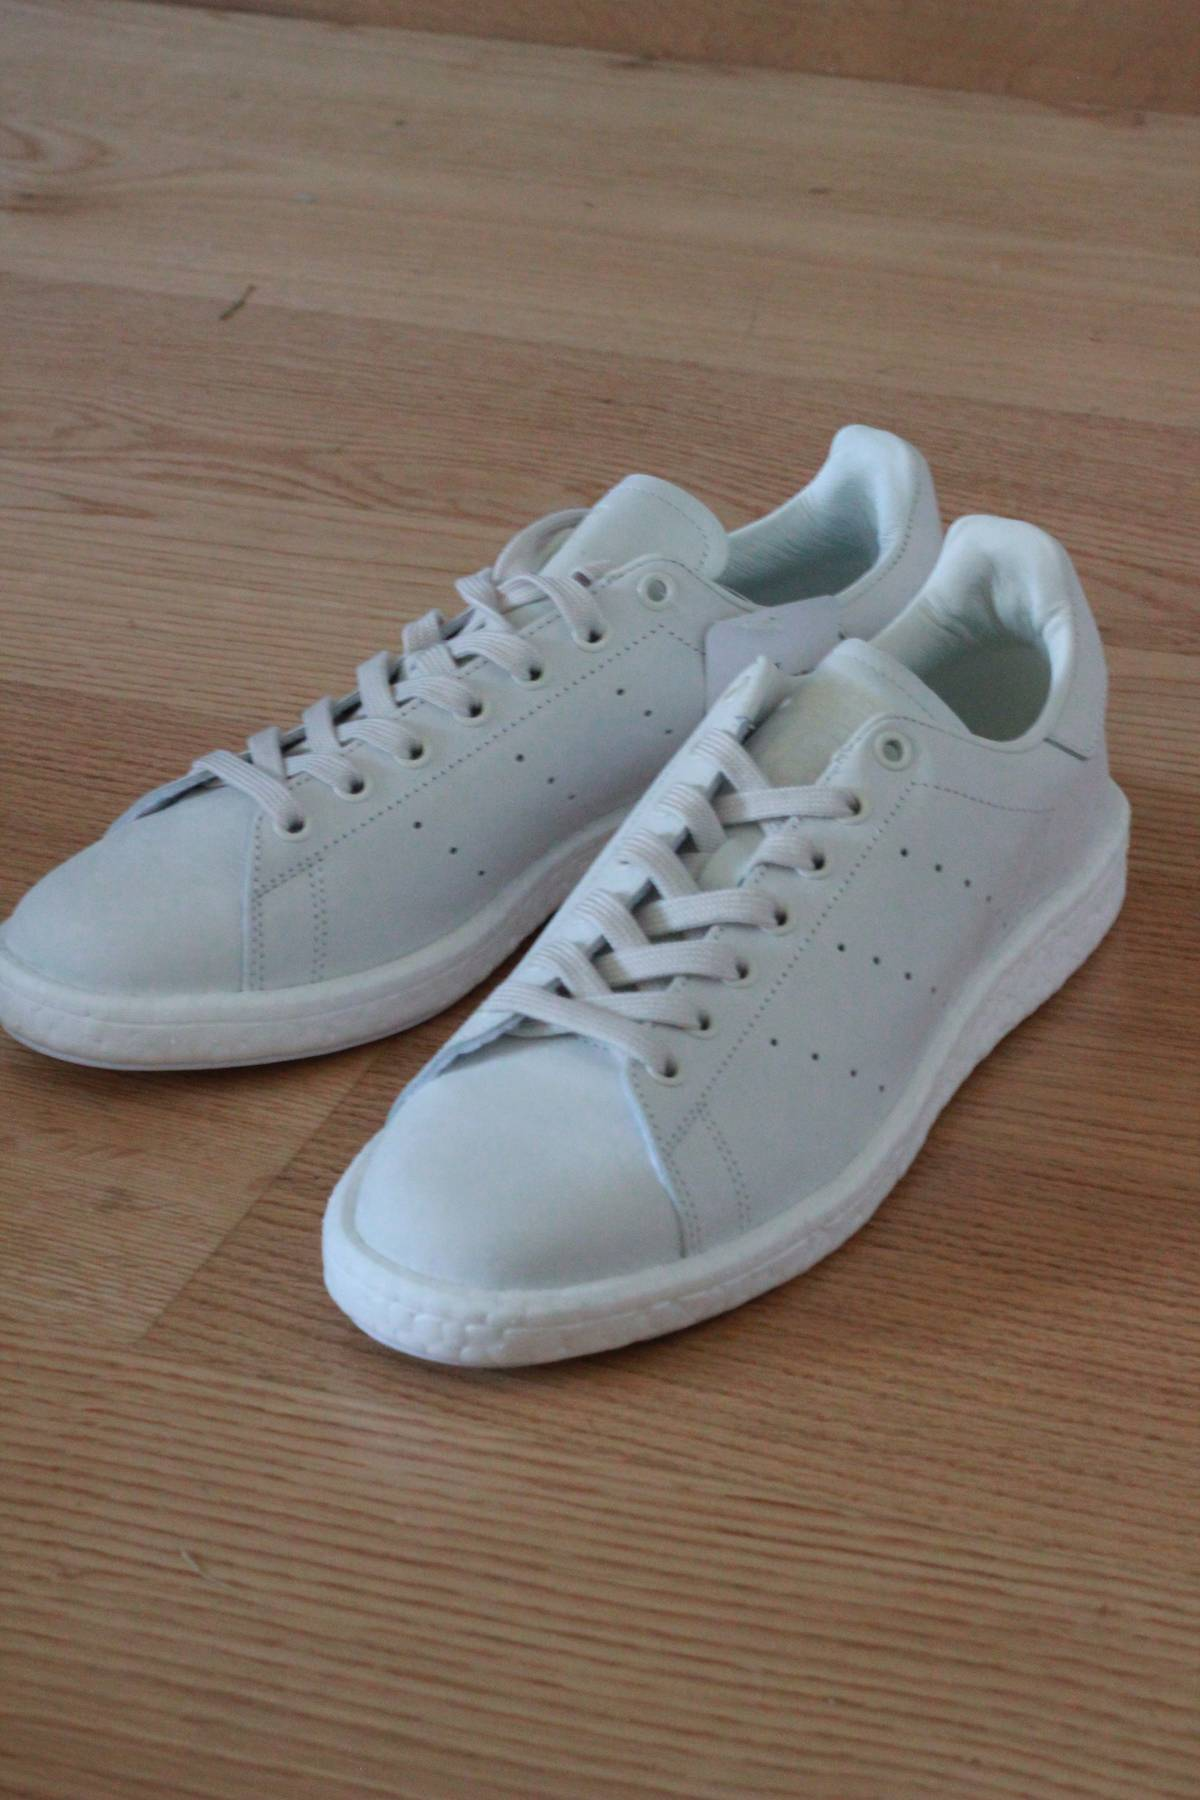 hot sale online 14299 c1949 Adidas Sneakersnstuff x Adidas Stan Smith Boosts (BY2281) - Size US 10 -  New w Box Size 10 - Low-Top Sneakers for Sale - Grailed